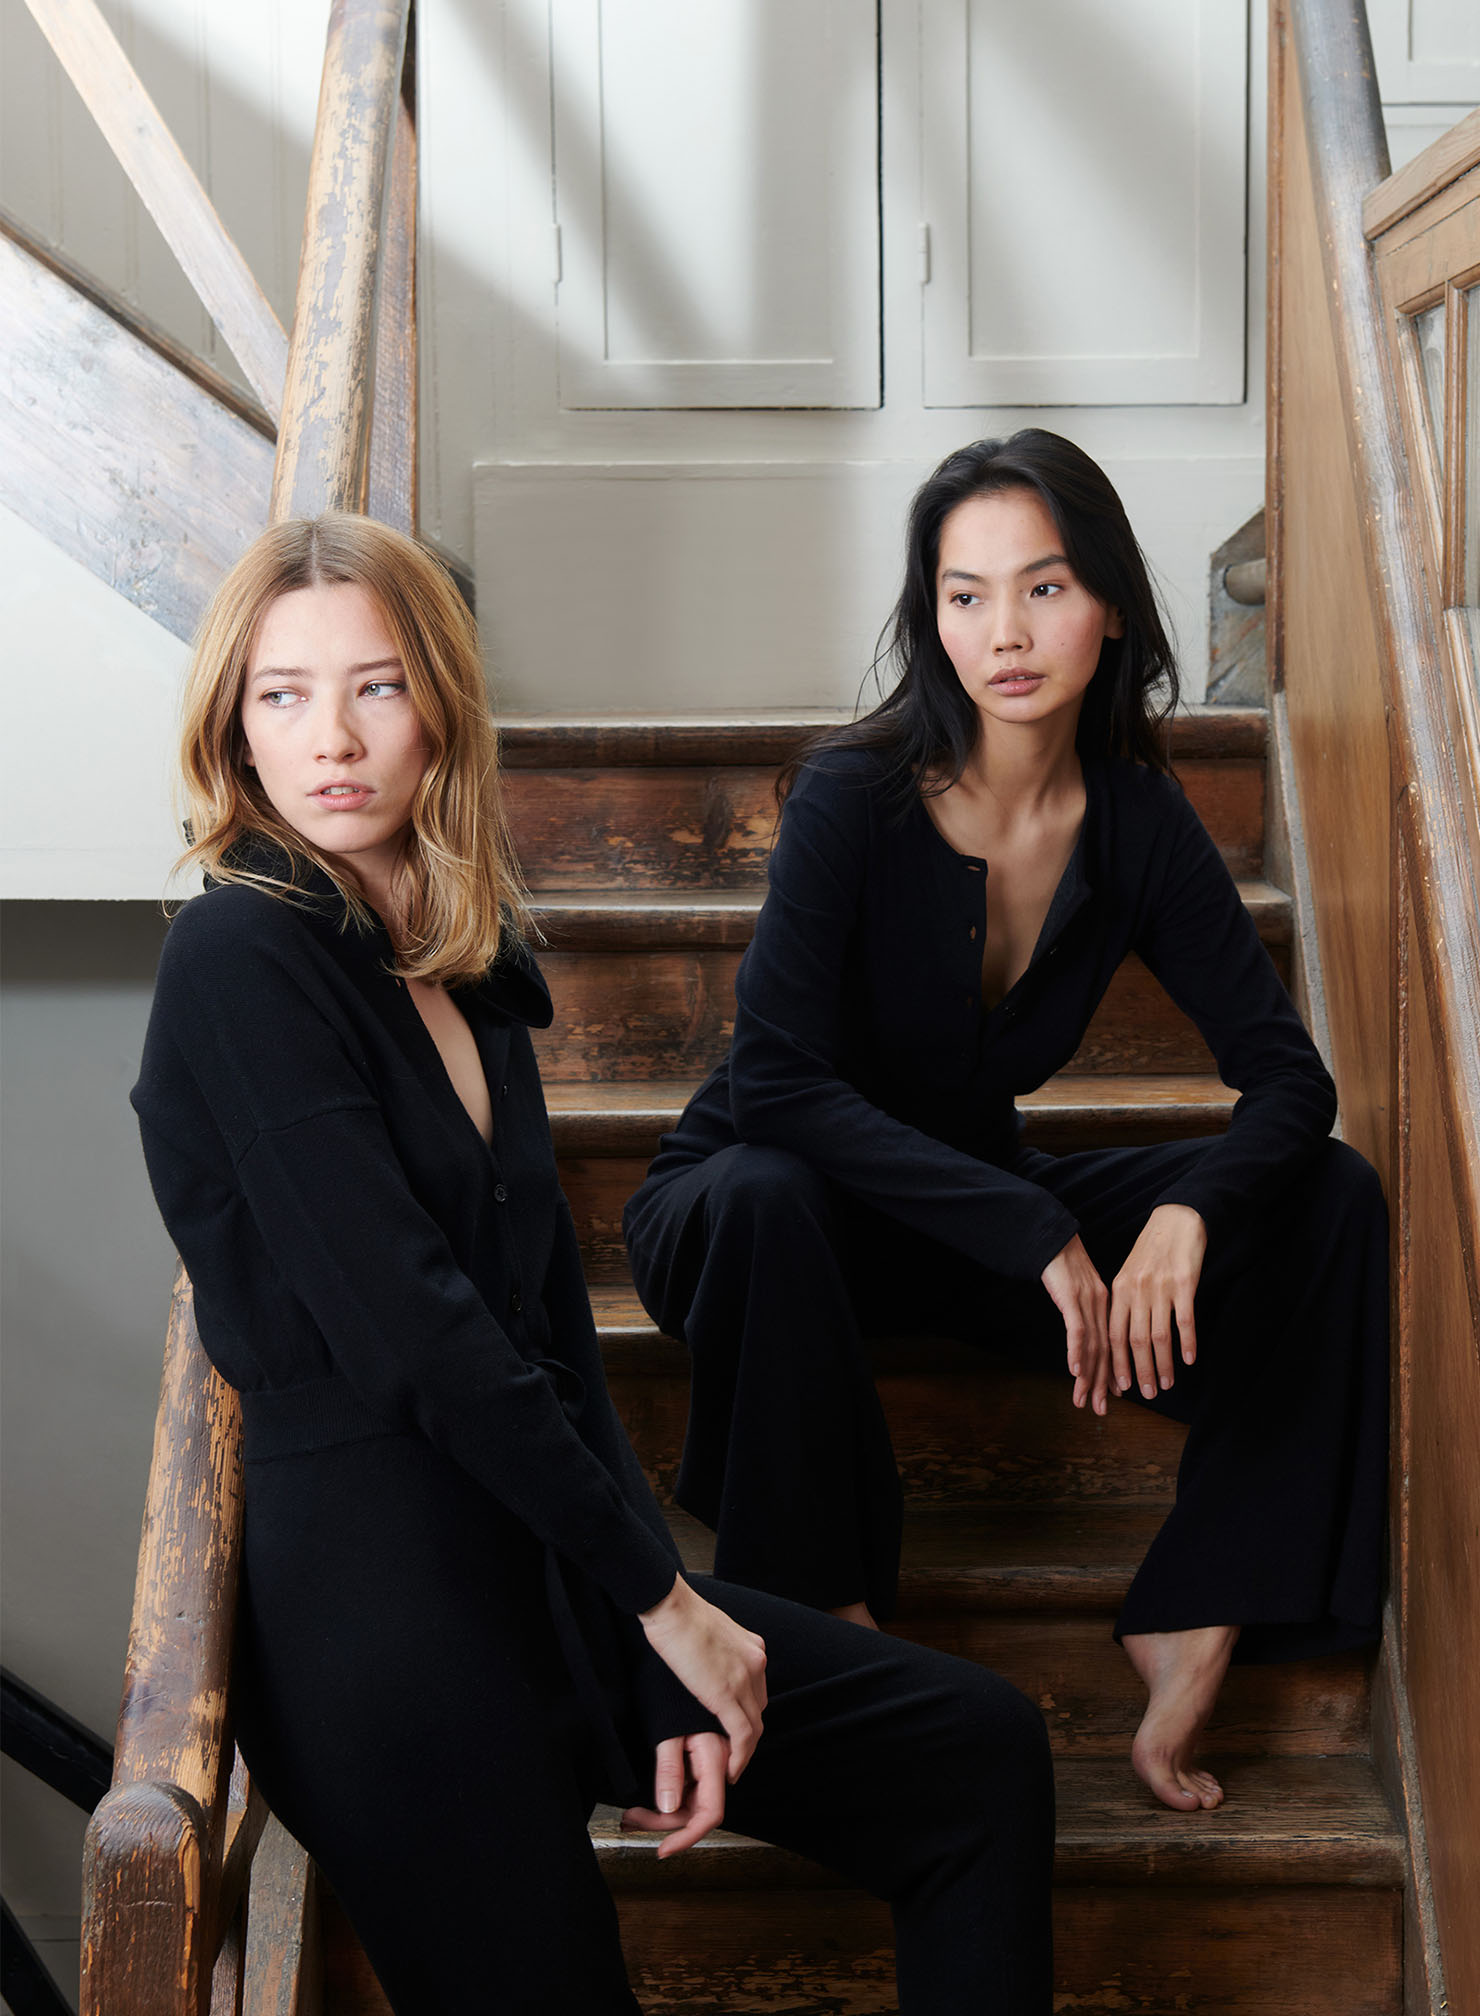 Look S21 - TIE & DYE SWEAT